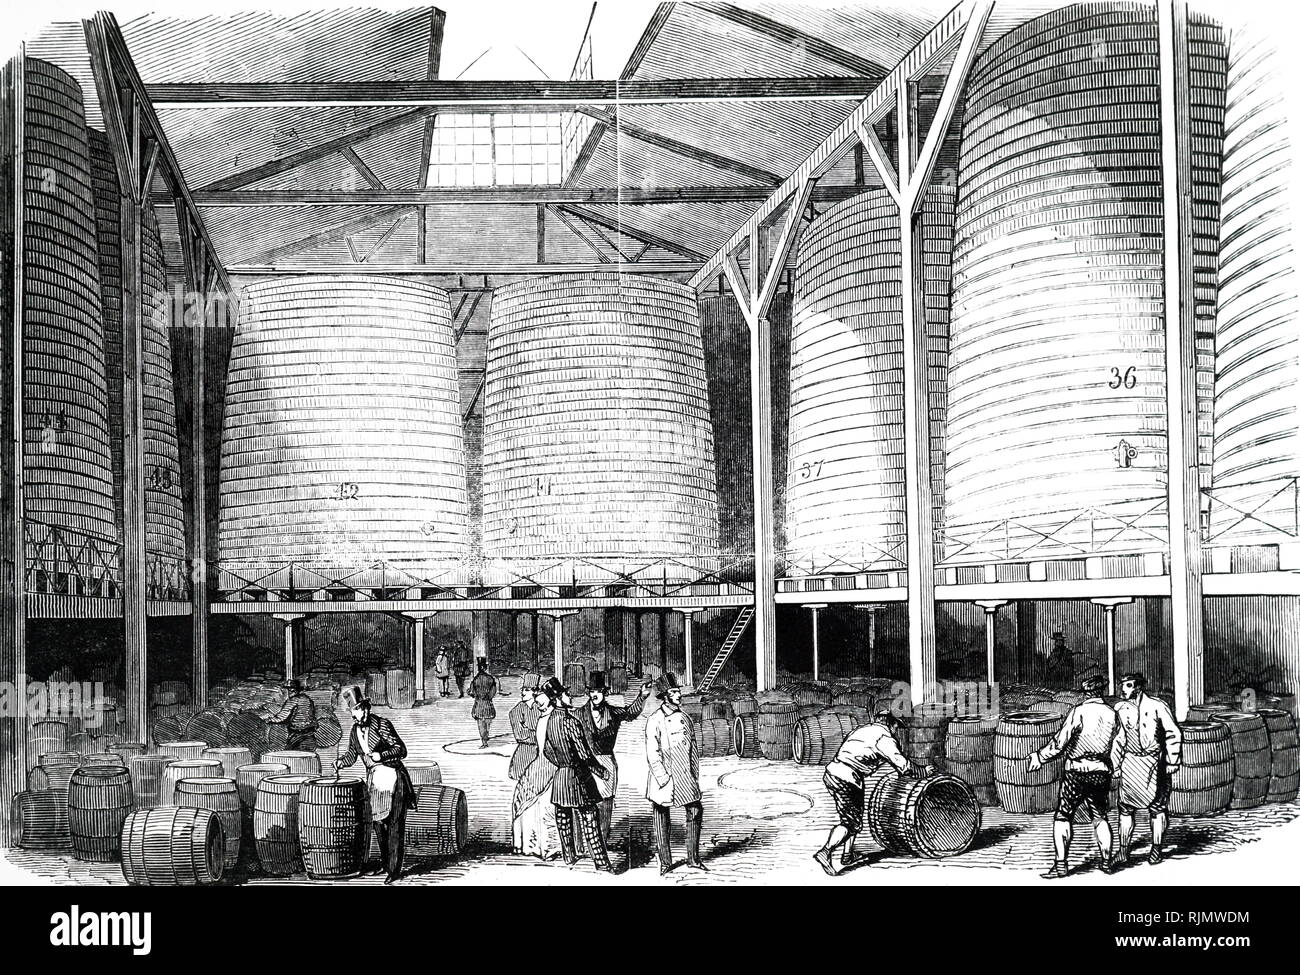 An engraving of Brewing: storage vats at Barclay and Perkins Brewery, Southwark. 1847. - Stock Image